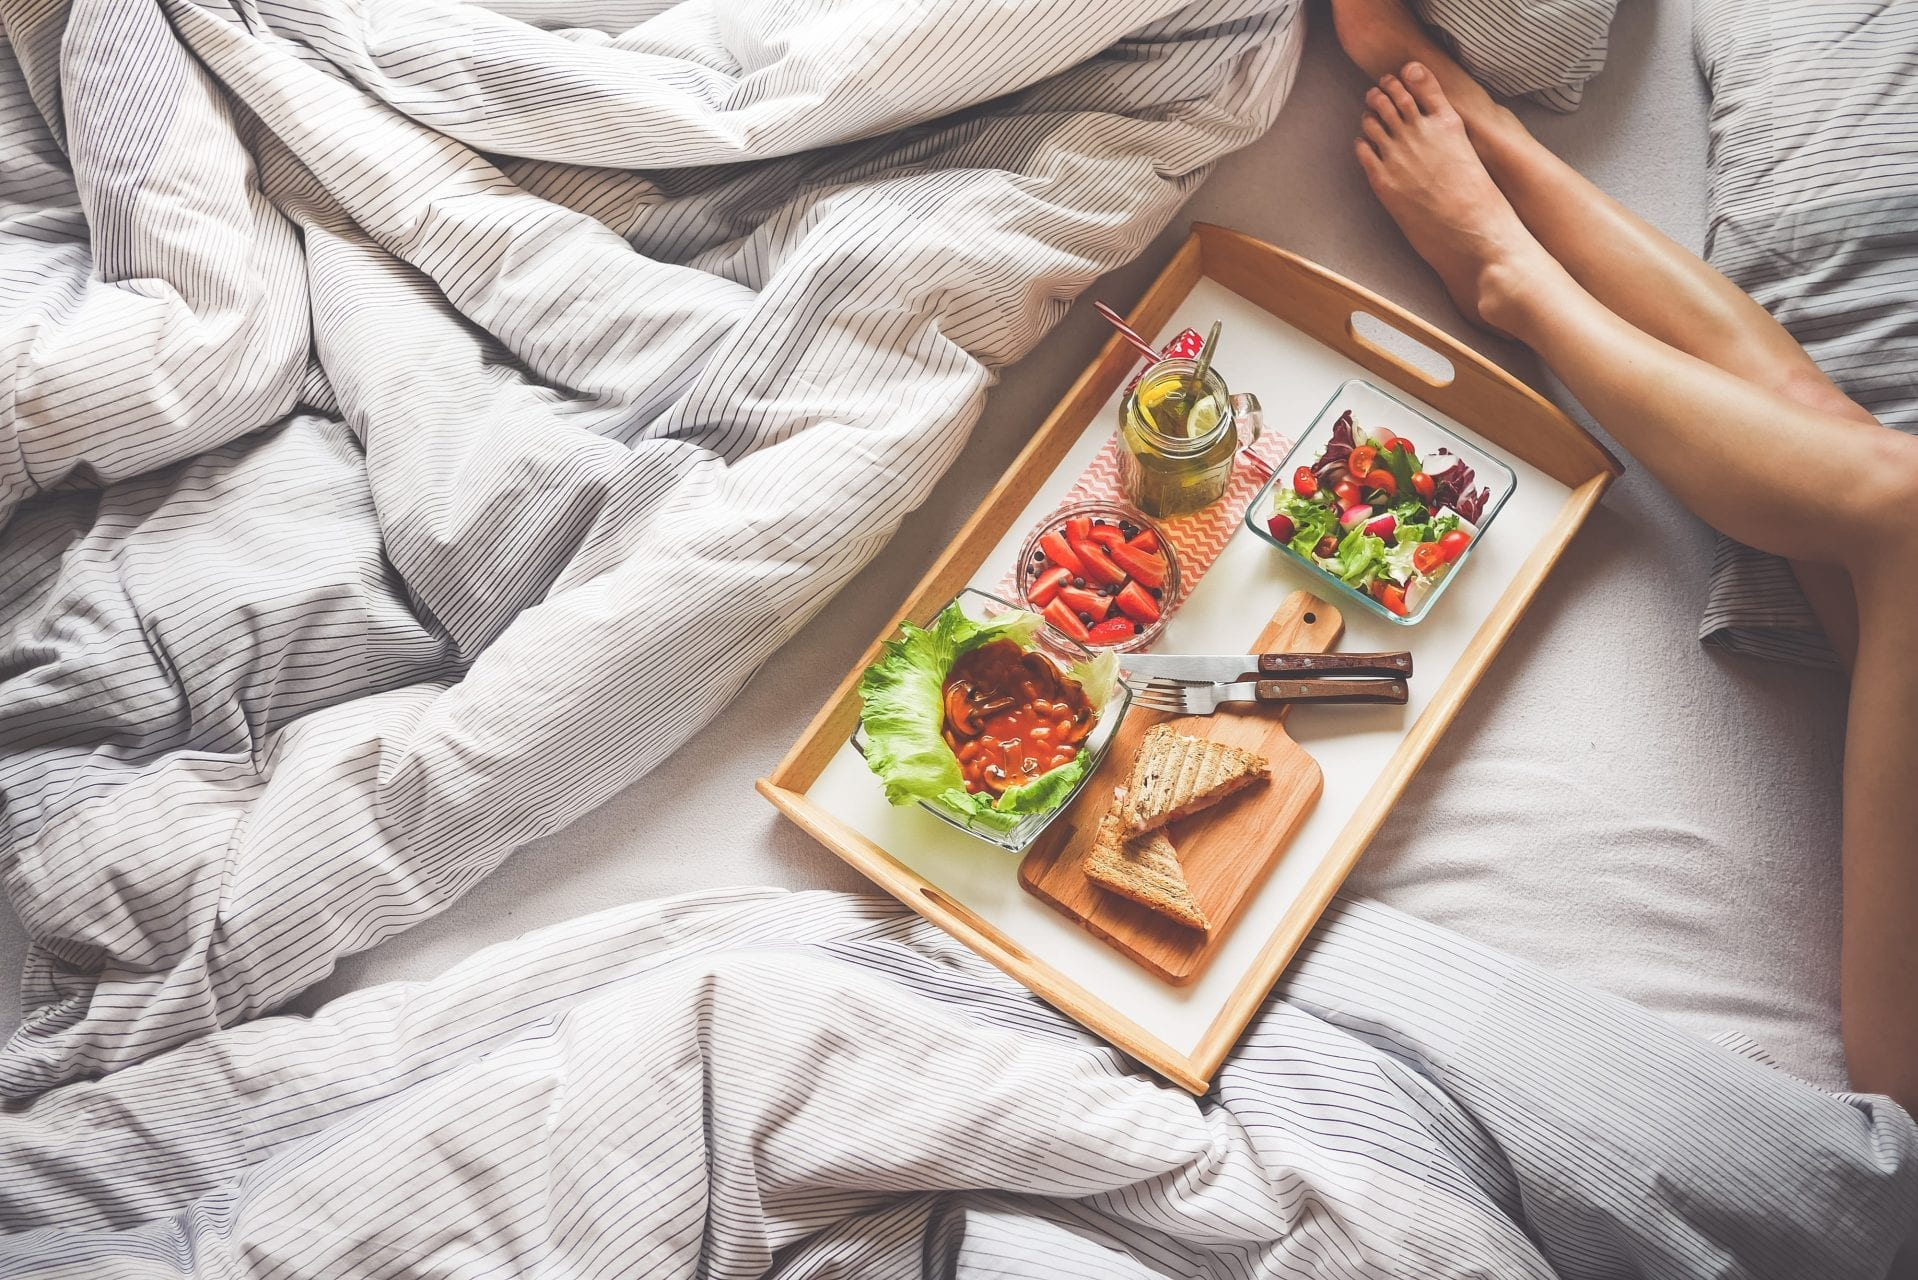 Sleep is More Important Than Food